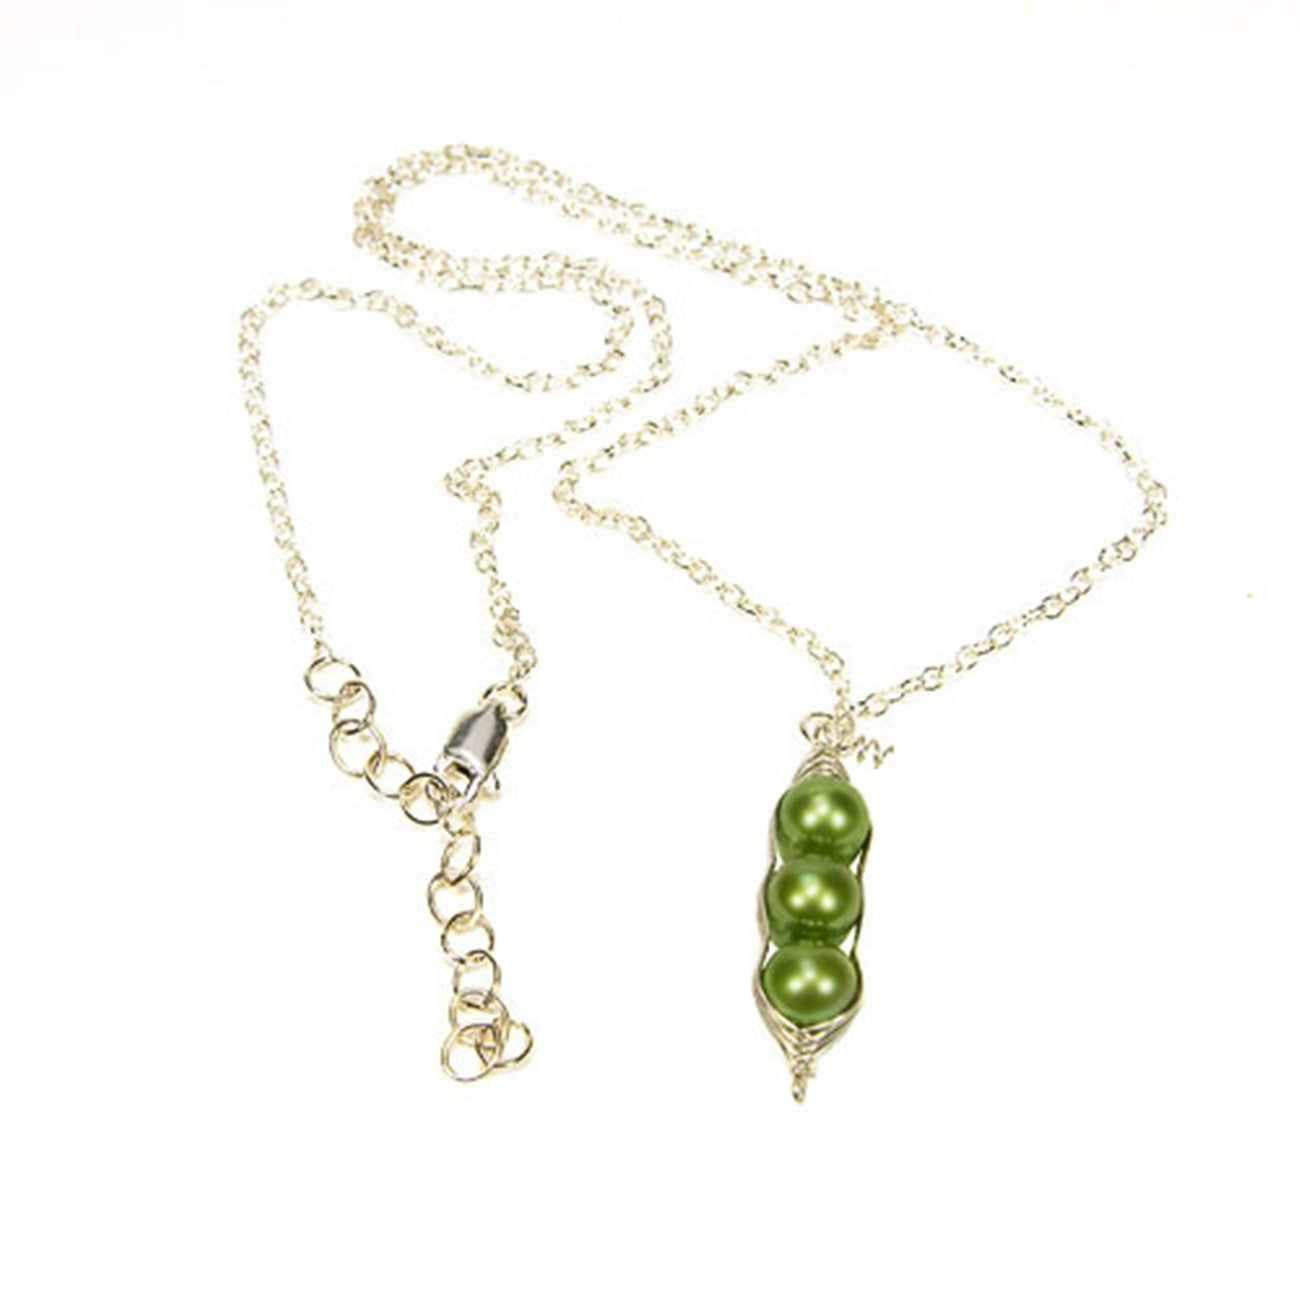 Three Peas in a Pod Freshwater Pearl Necklace